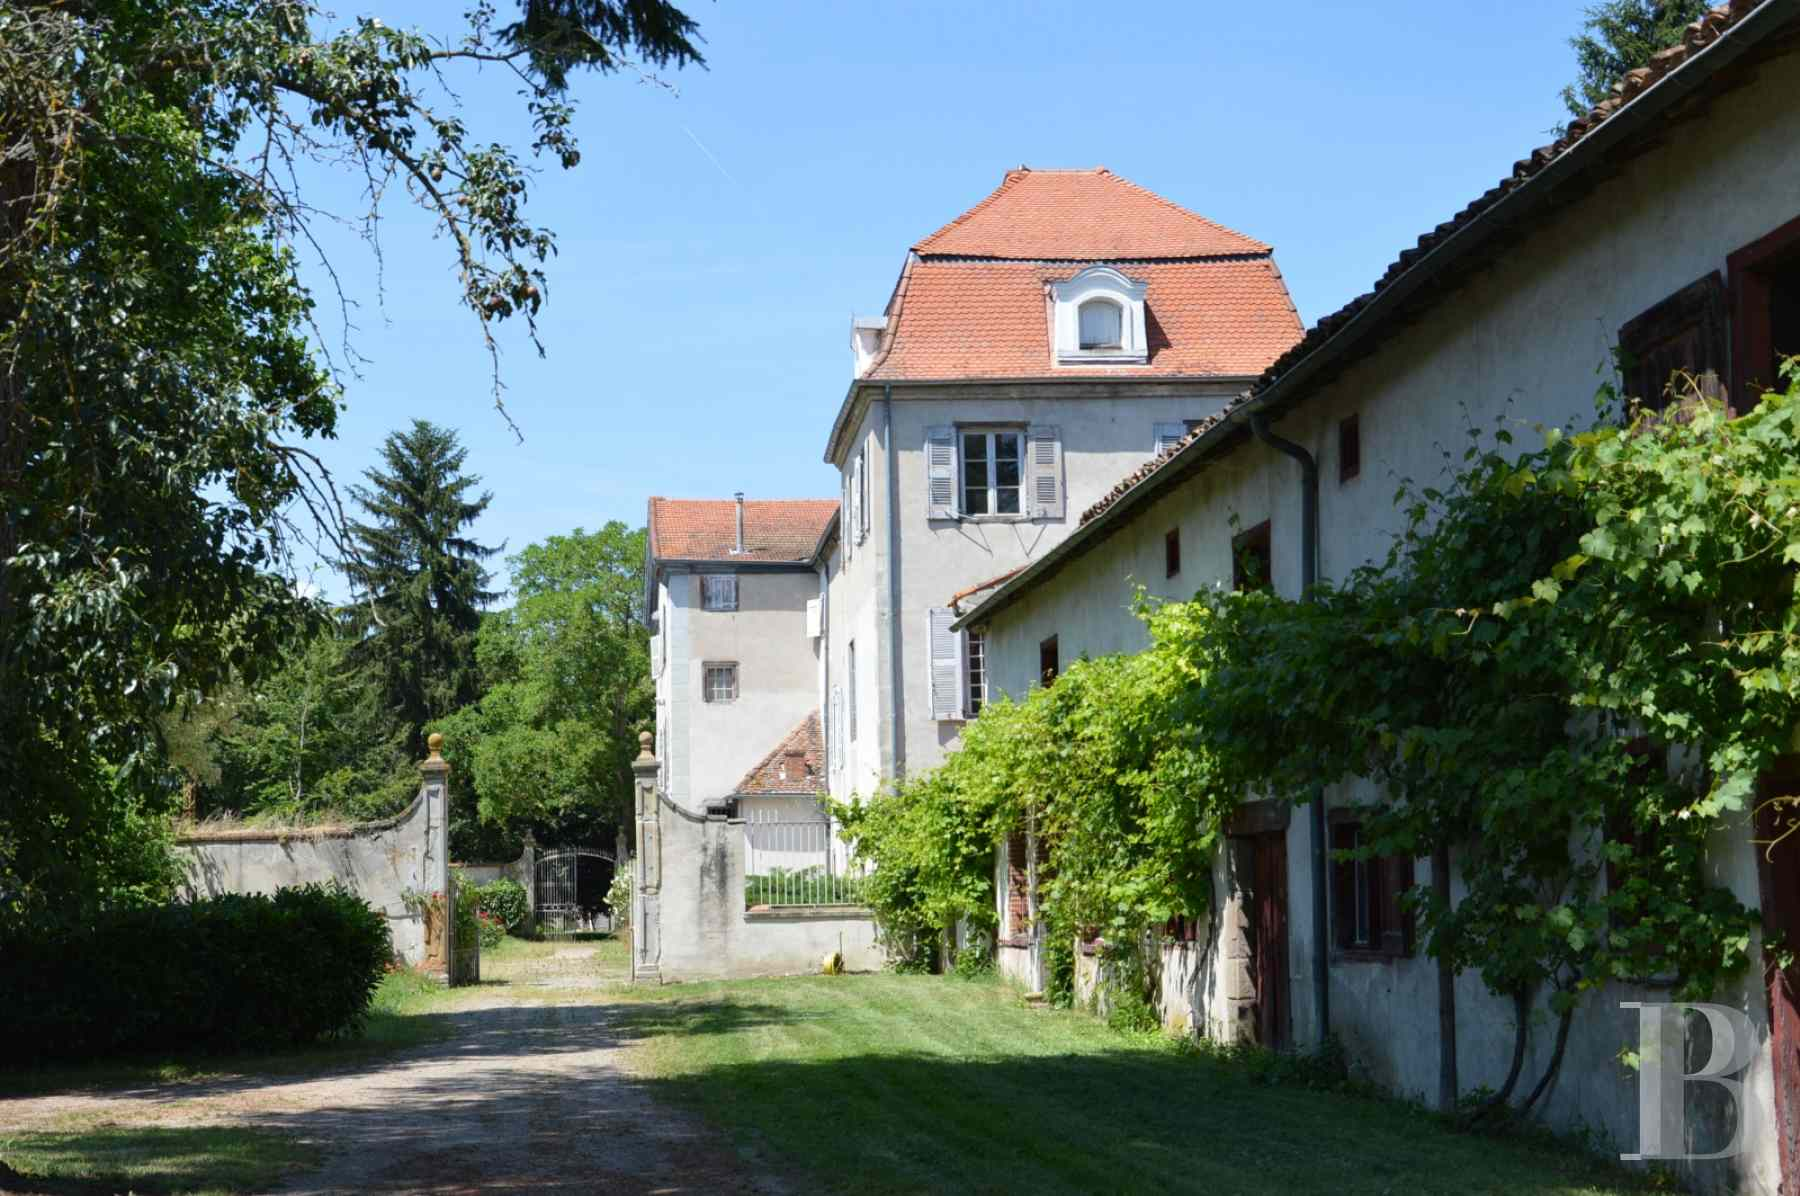 chateaux for sale France rhones alps liste chateau - 13 zoom